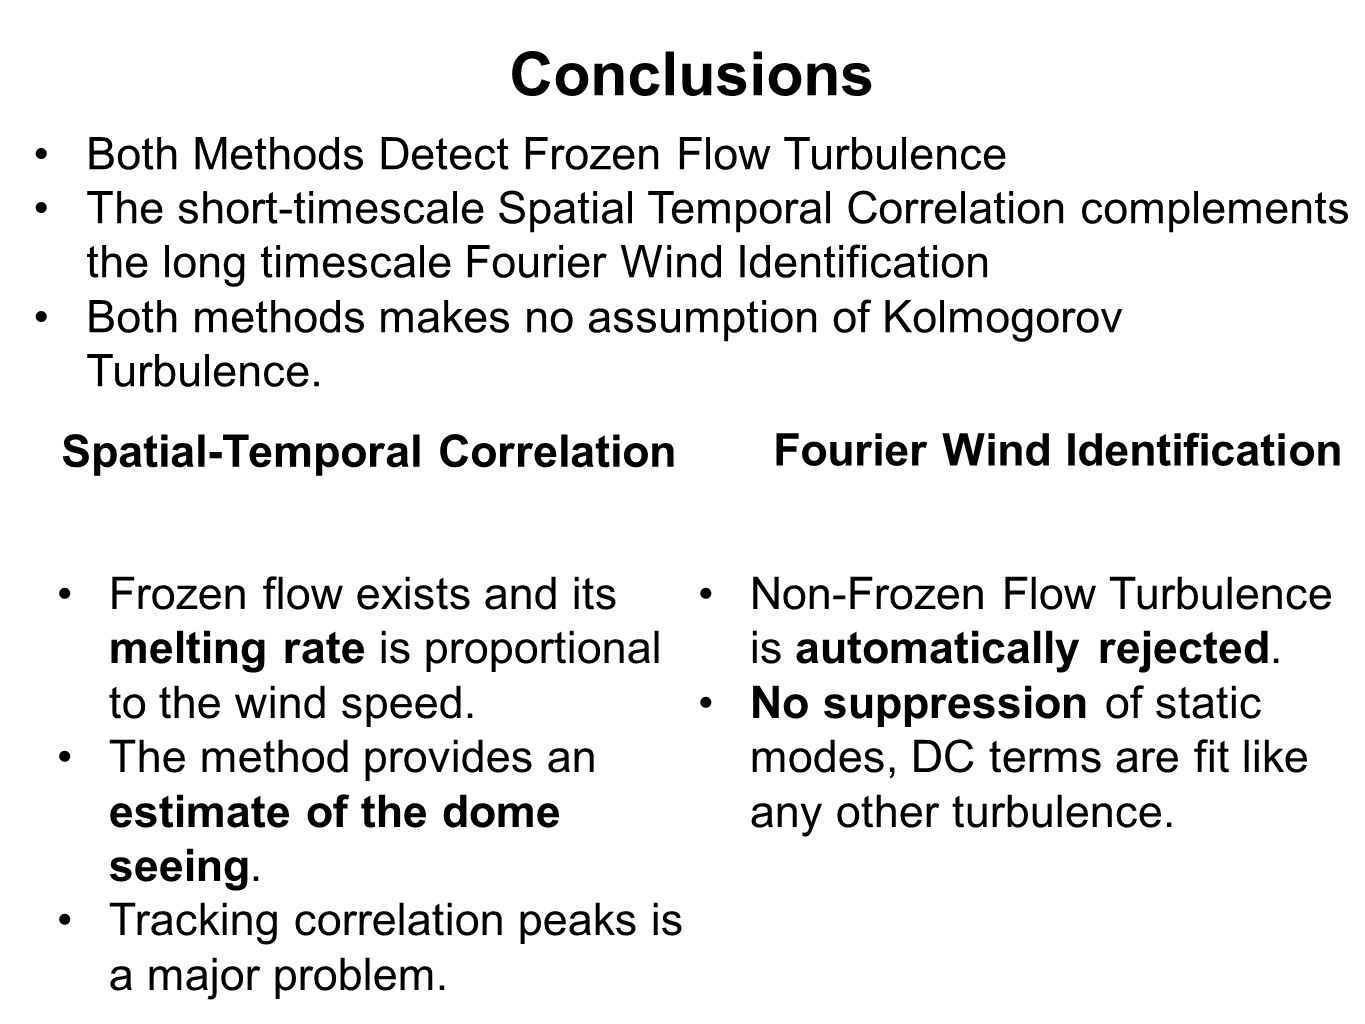 Conclusions Both Methods Detect Frozen Flow Turbulence The short-timescale Spatial Temporal Correlation complements the long timescale Fourier Wind Identification Both methods makes no assumption of Kolmogorov Turbulence.